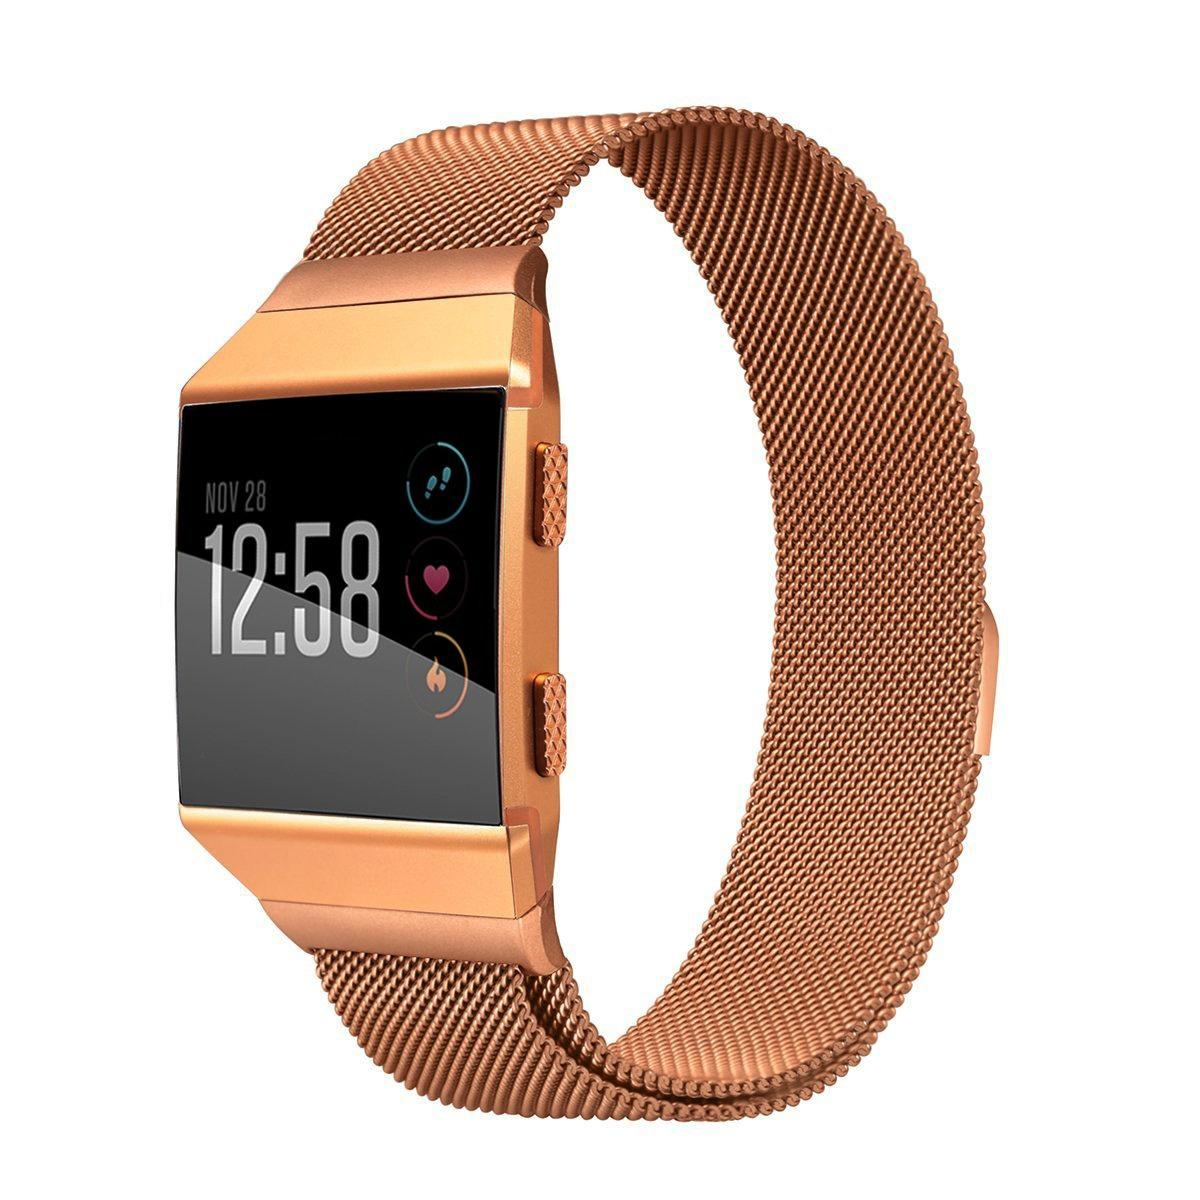 Price Comparisons For Haotop For Fitbit Ionic Bands Replacement Milanese Loop Stainless Steel Metal Bracelet Strap For Fitbit Ionic Smartwatch Small Large Size Intl